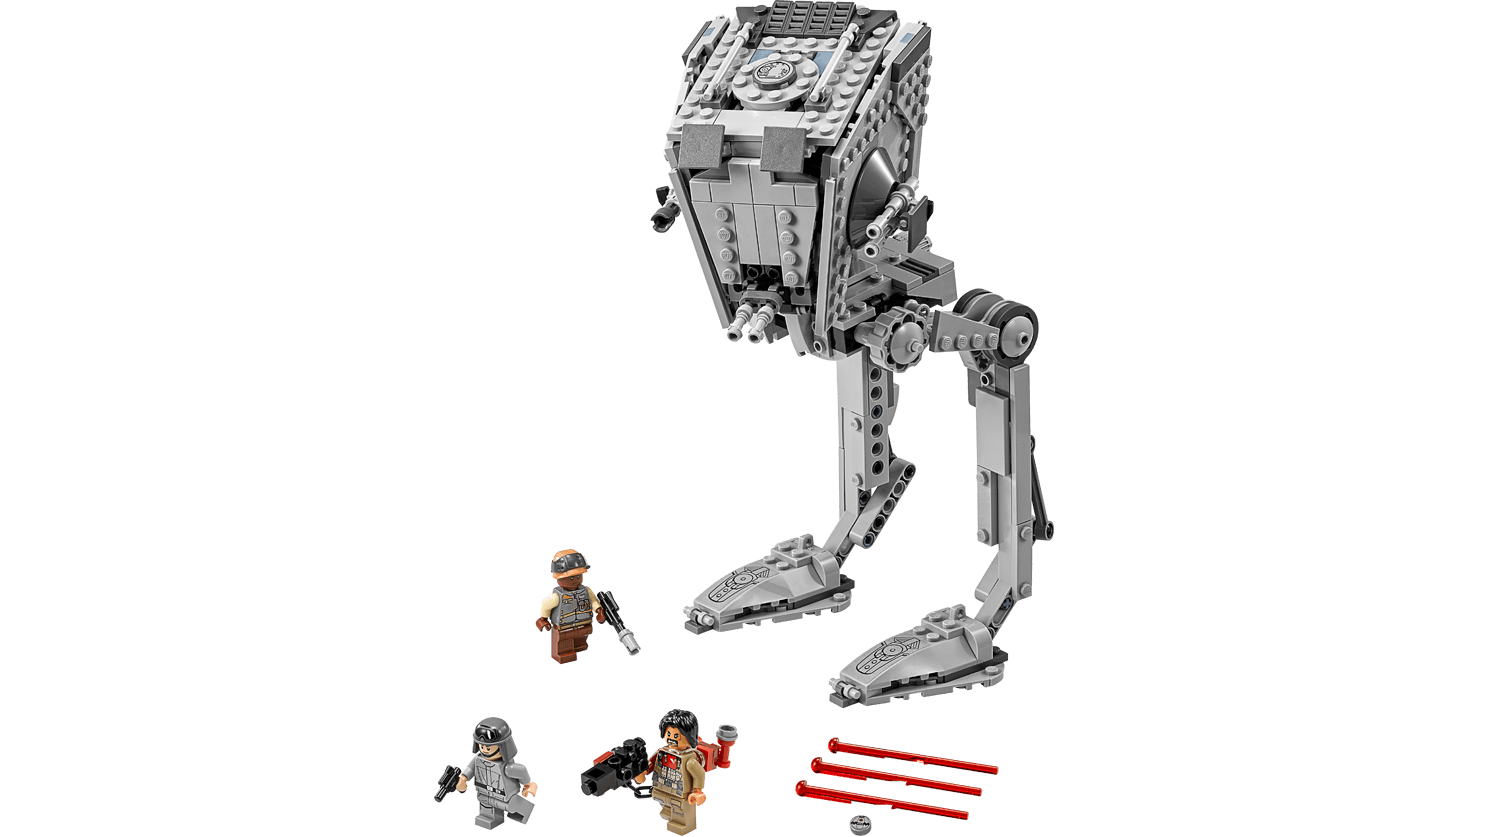 lego 39 rogue one 39 sets officially revealed the star wars. Black Bedroom Furniture Sets. Home Design Ideas